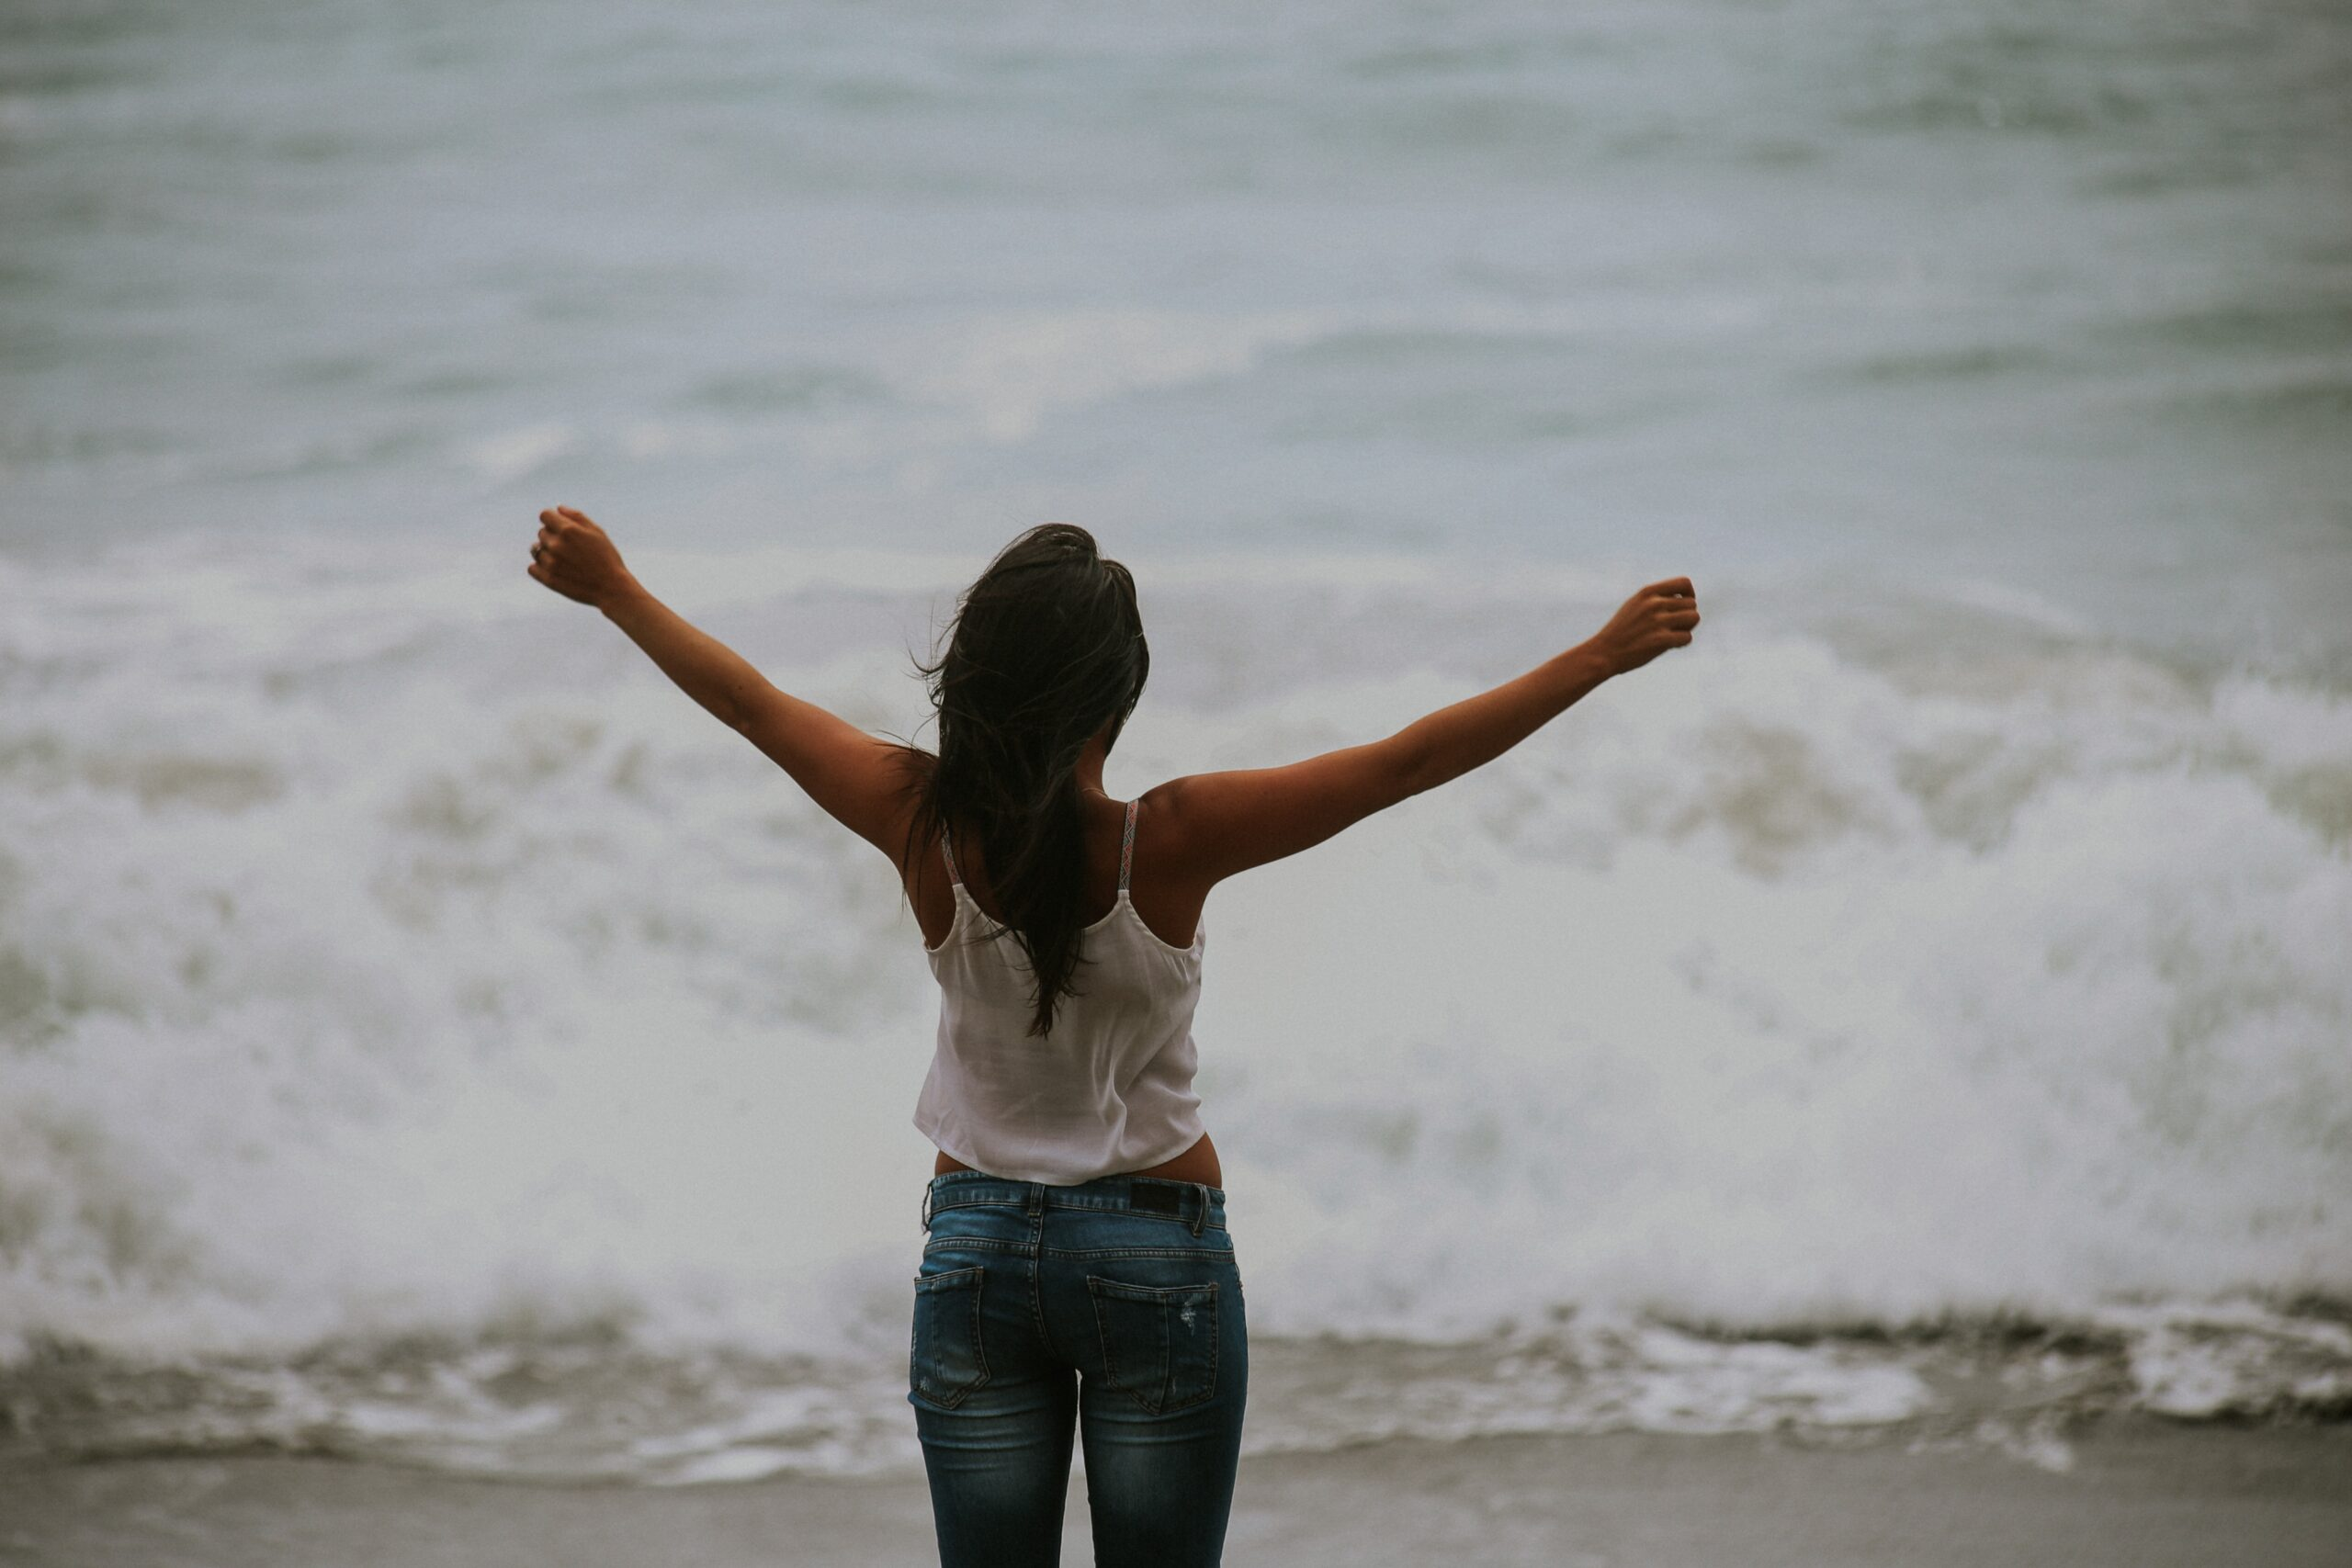 woman standing at edge of ocean with arms raised in celebration